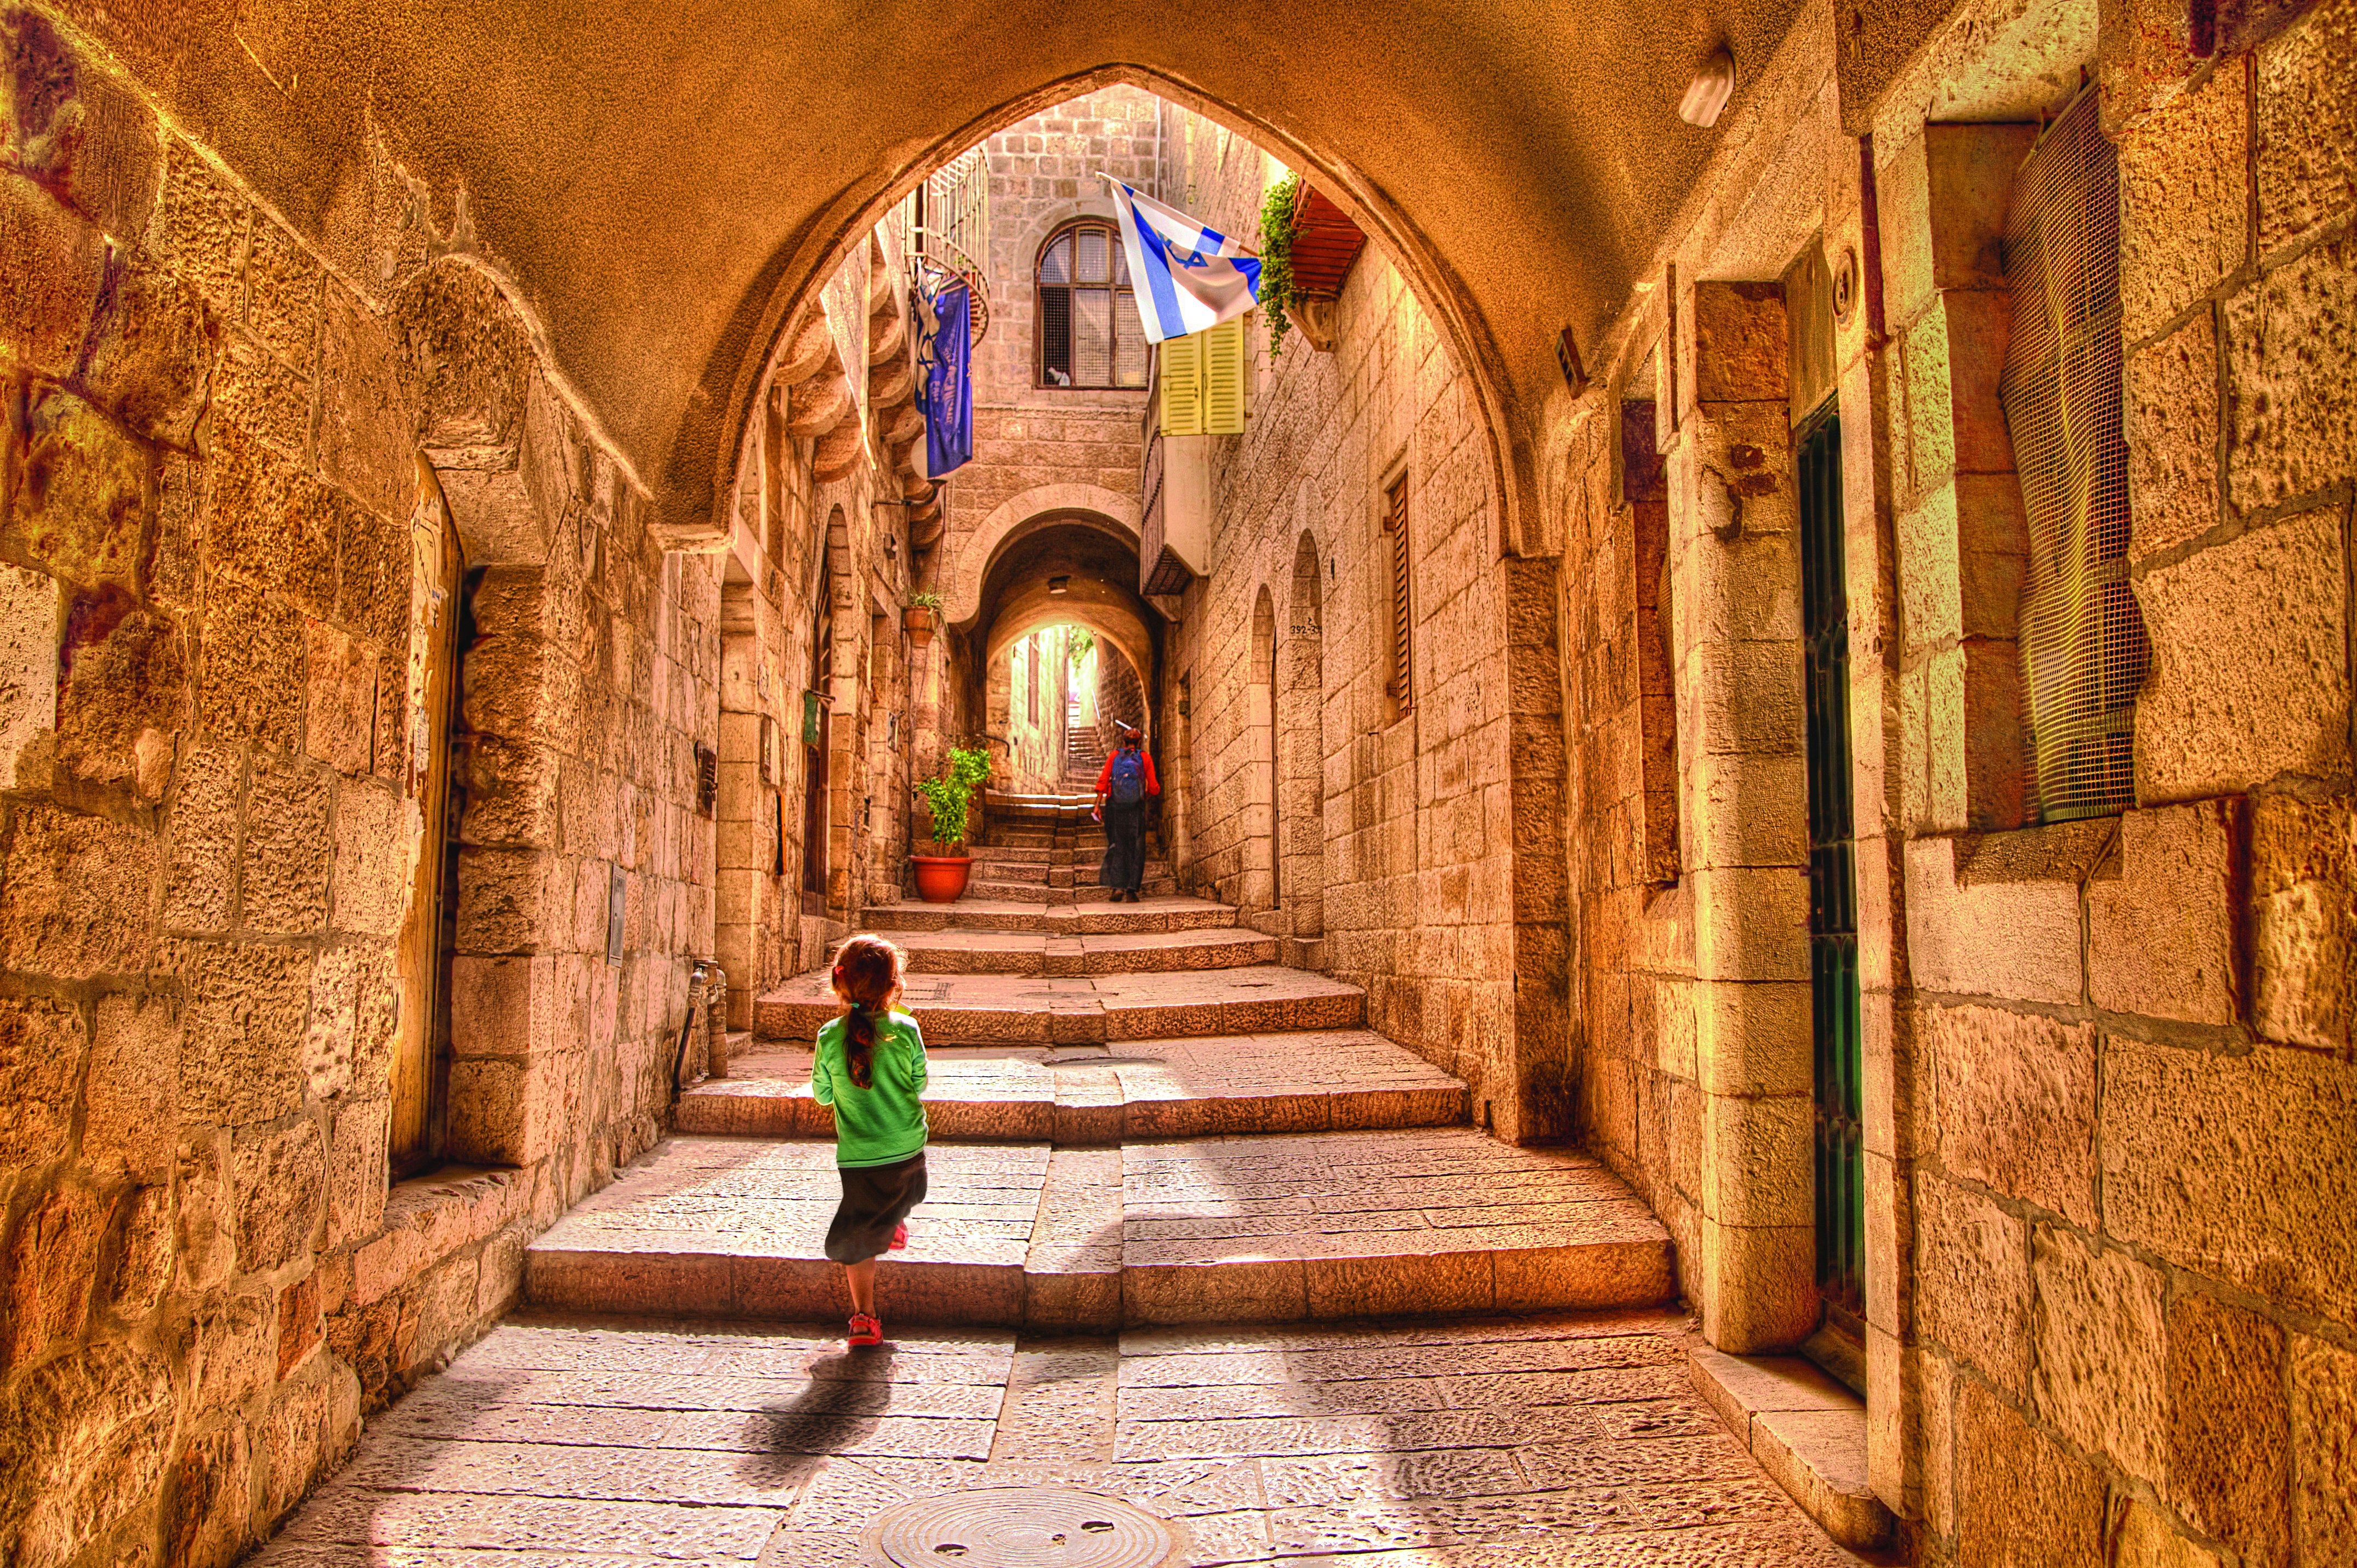 88_The__heart_of_the_Old_city_-_Noam_Chen_-Israel